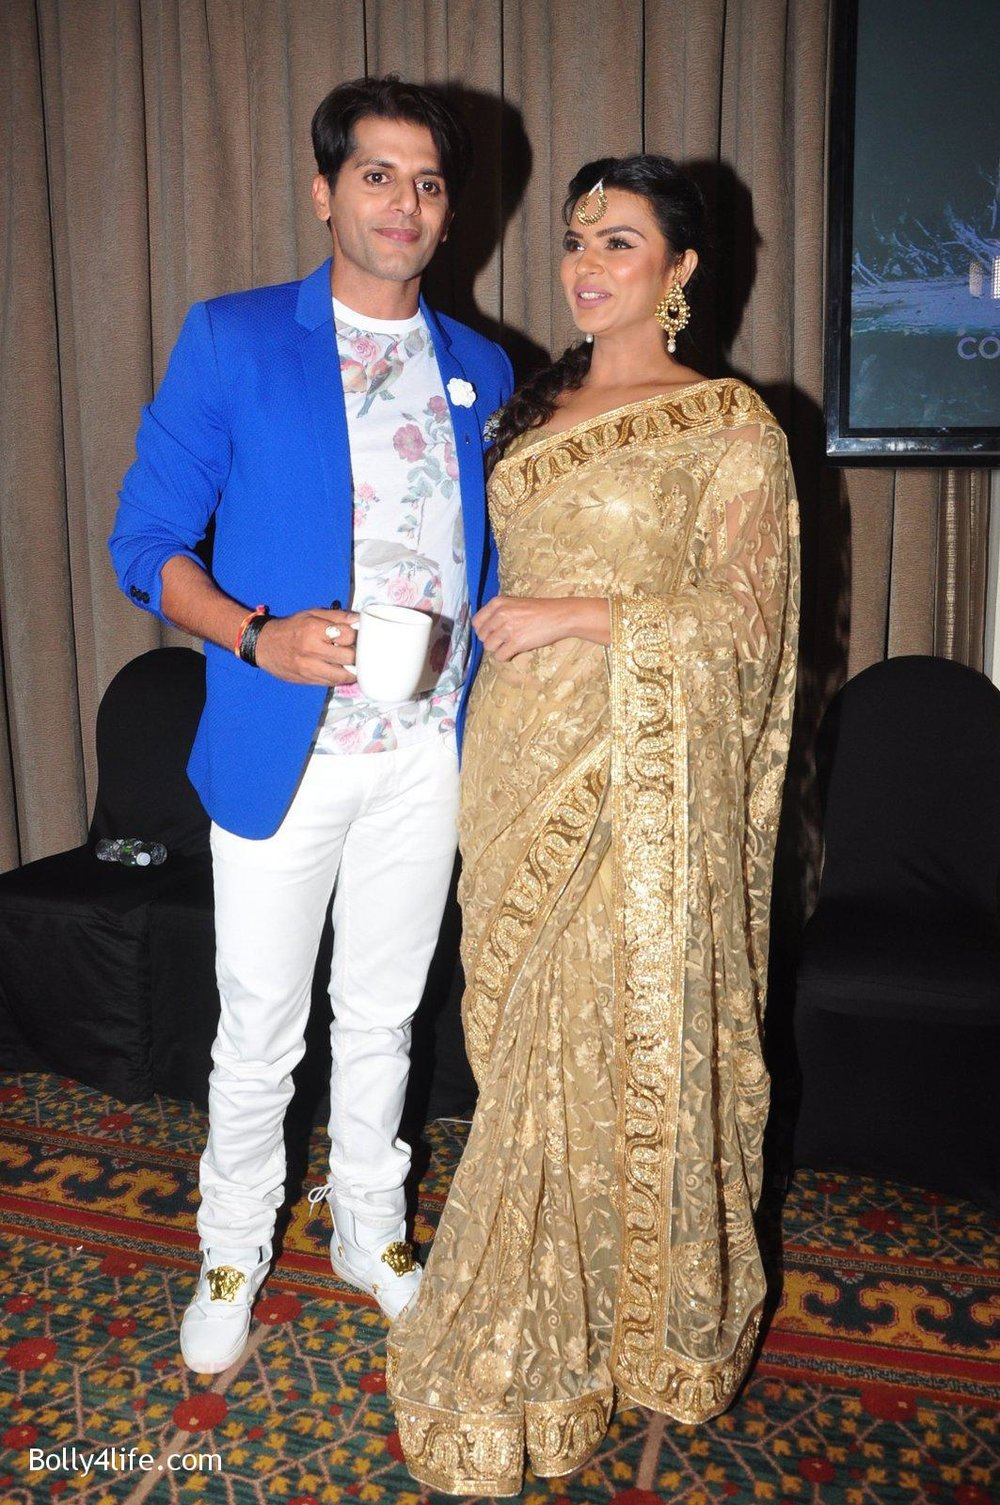 Aashka-Goradia-Karanvir-Bohra-at-Naagin-2-launch-in-Mumbai-on-4th-Oct-2016-24.jpg